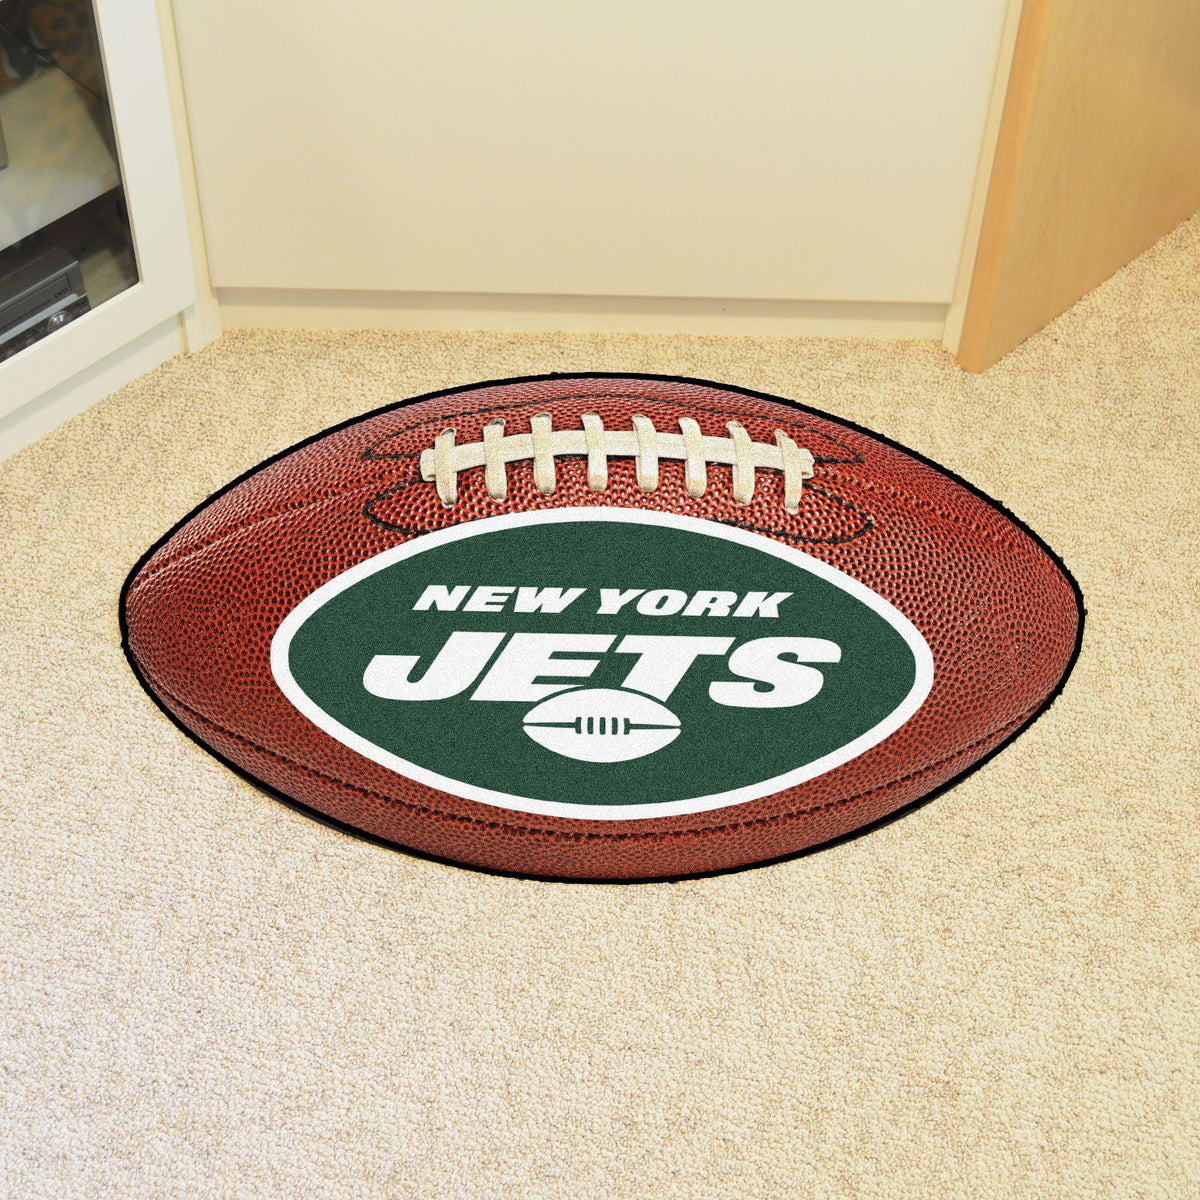 NFL - Football Mat NFL Mats, Custom Shape Rugs, Football Mat, NFL, Home Fan Mats New York Jets